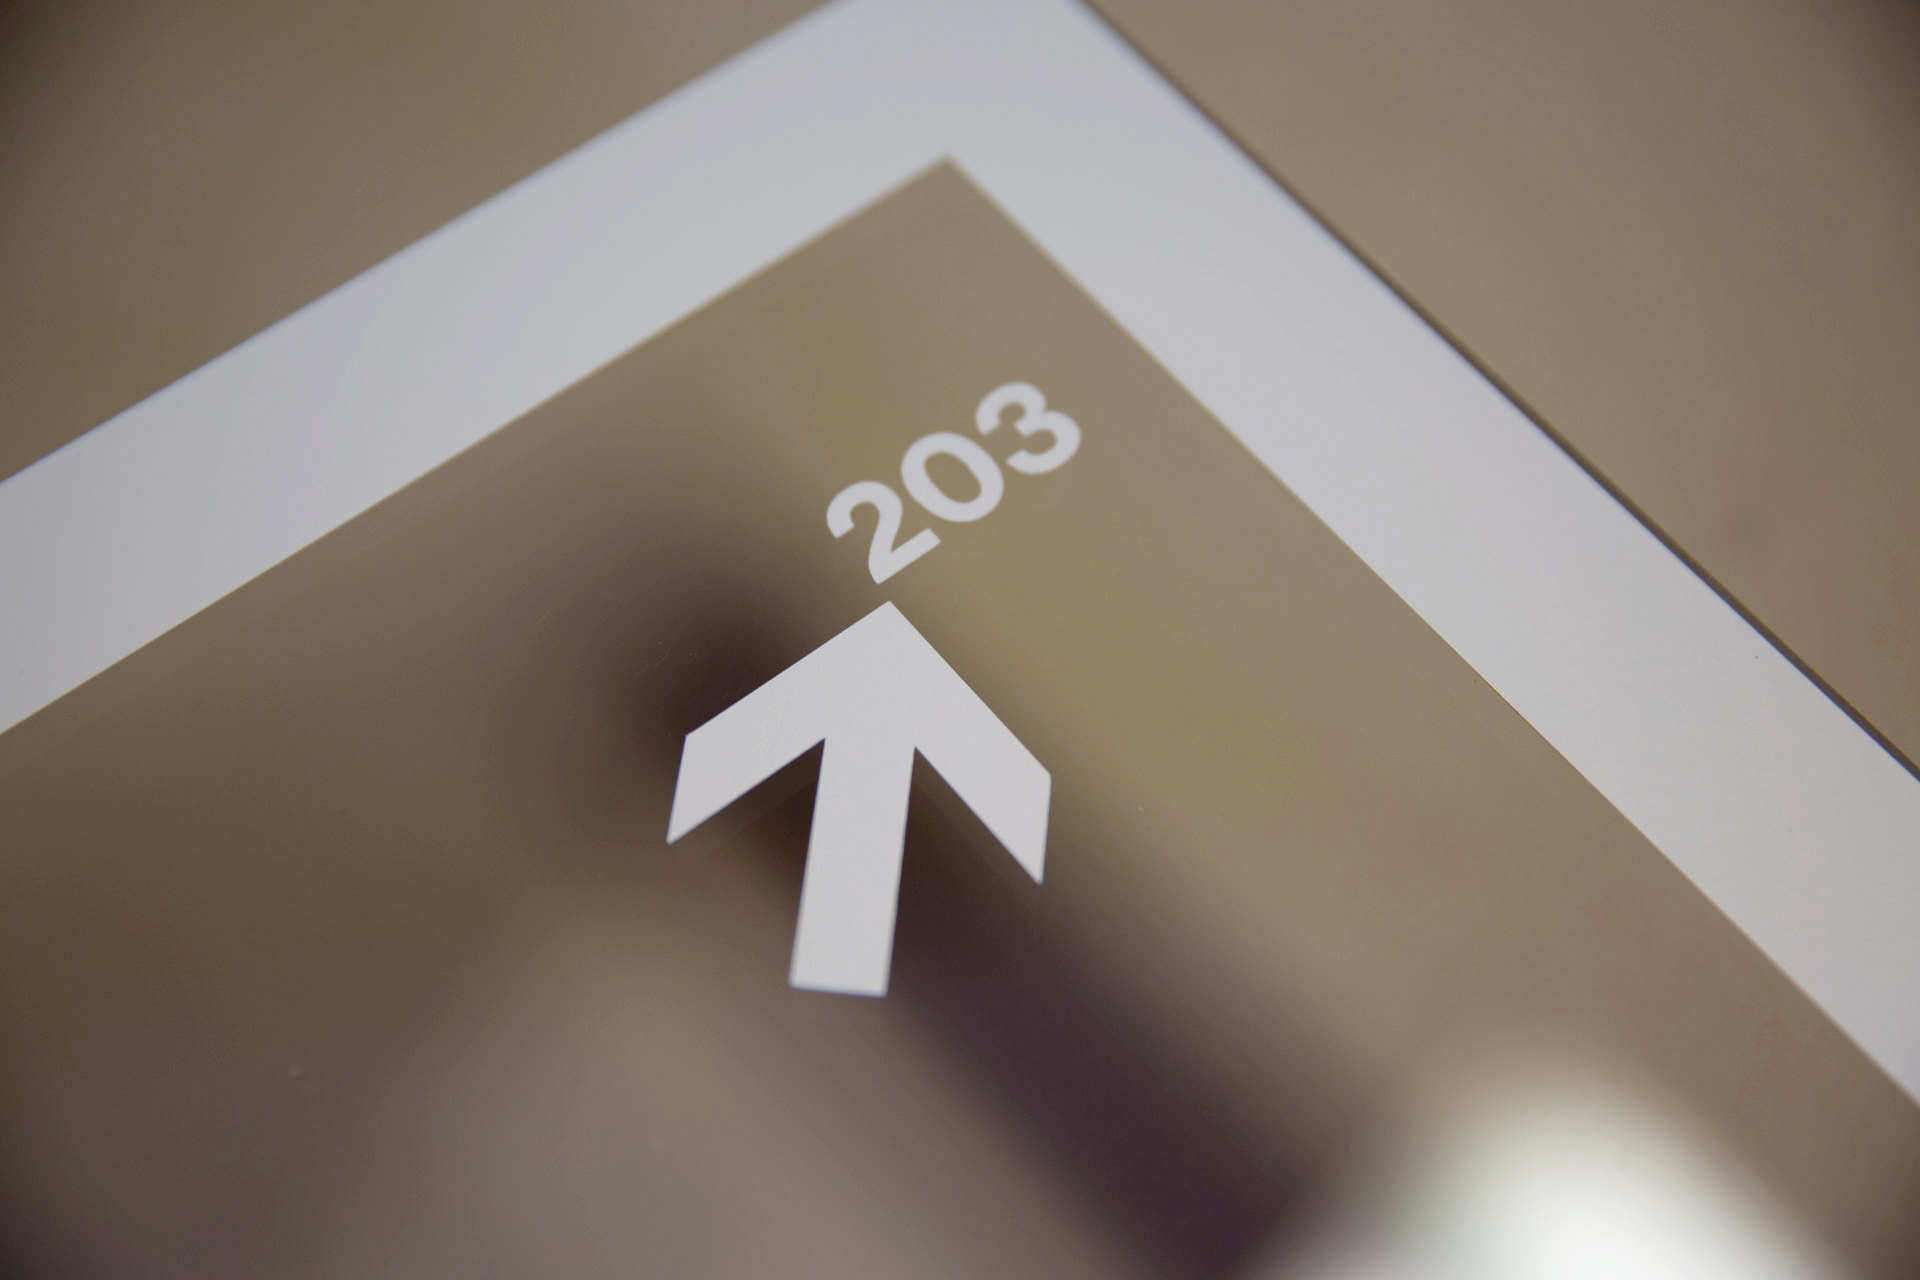 Close-up of white vinyl arrow, room number 203, and border on clear acrylic